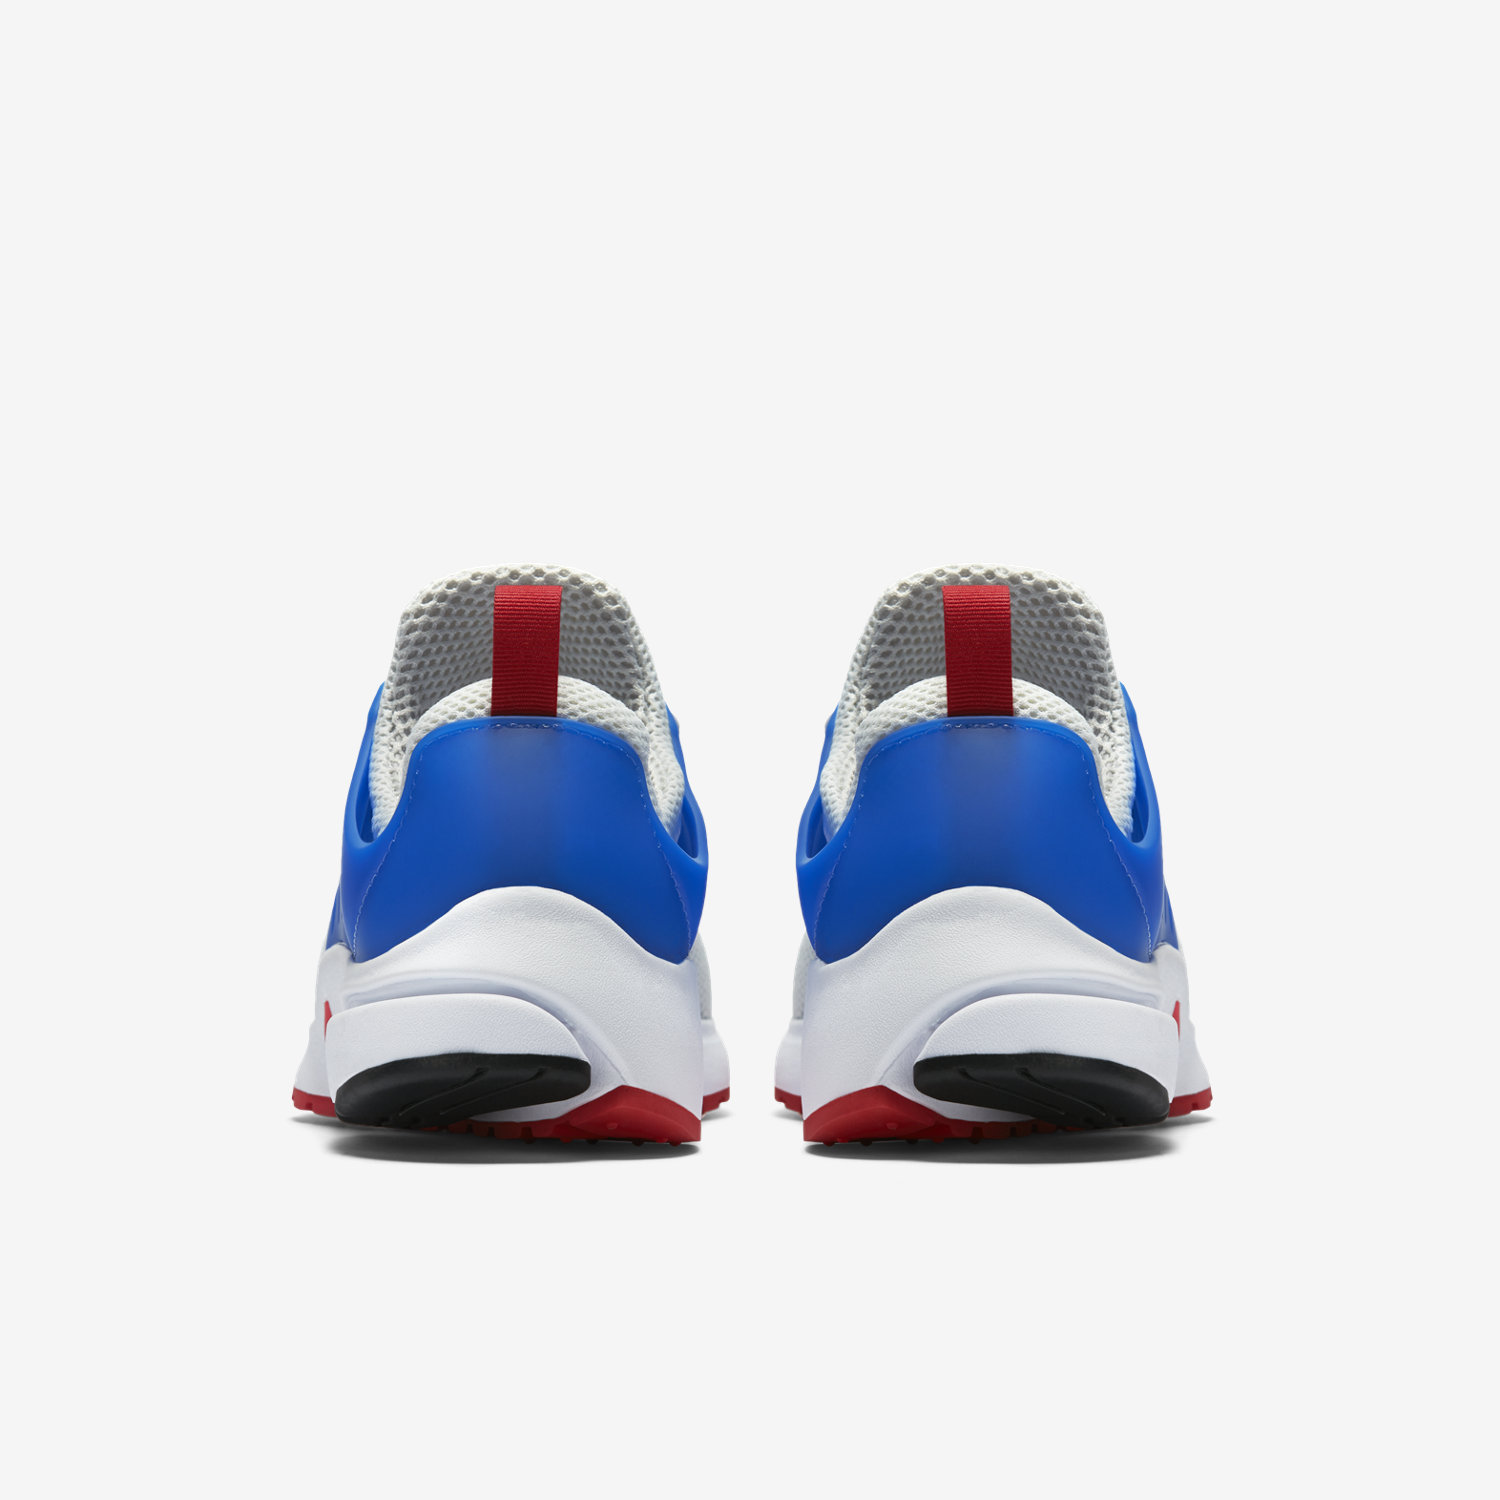 http://images.nike.com/is/image/DotCom/PDP_HERO_ZOOM/NIKE-AIR-PRESTO-ESSENTIAL-848187_004_F_PREM.jpg